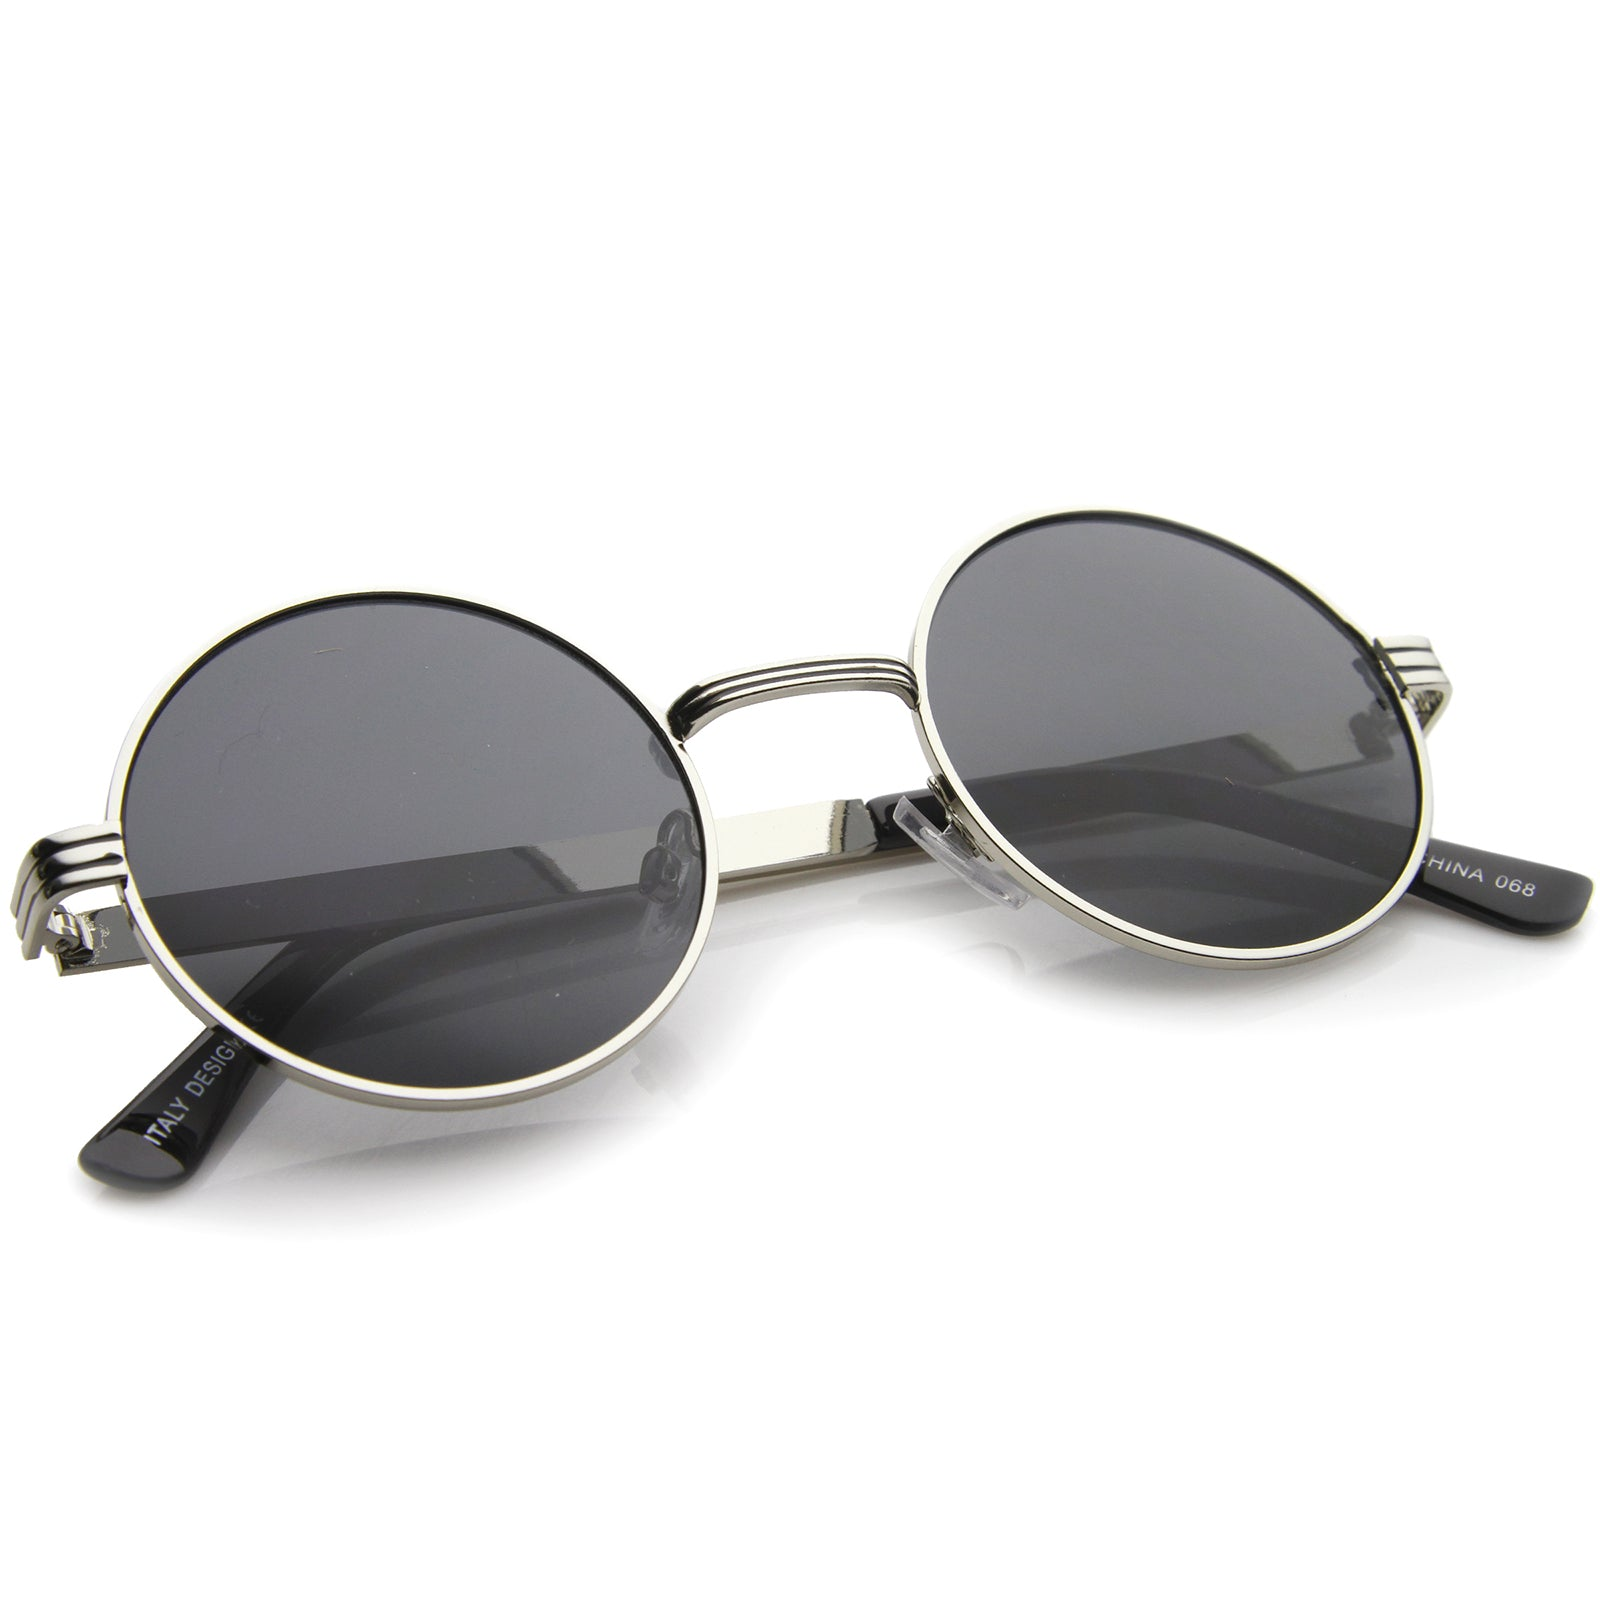 Retro Fashion Metal Textured Frame Flat Lens Round Sunglasses 50mm - sunglass.la - 12